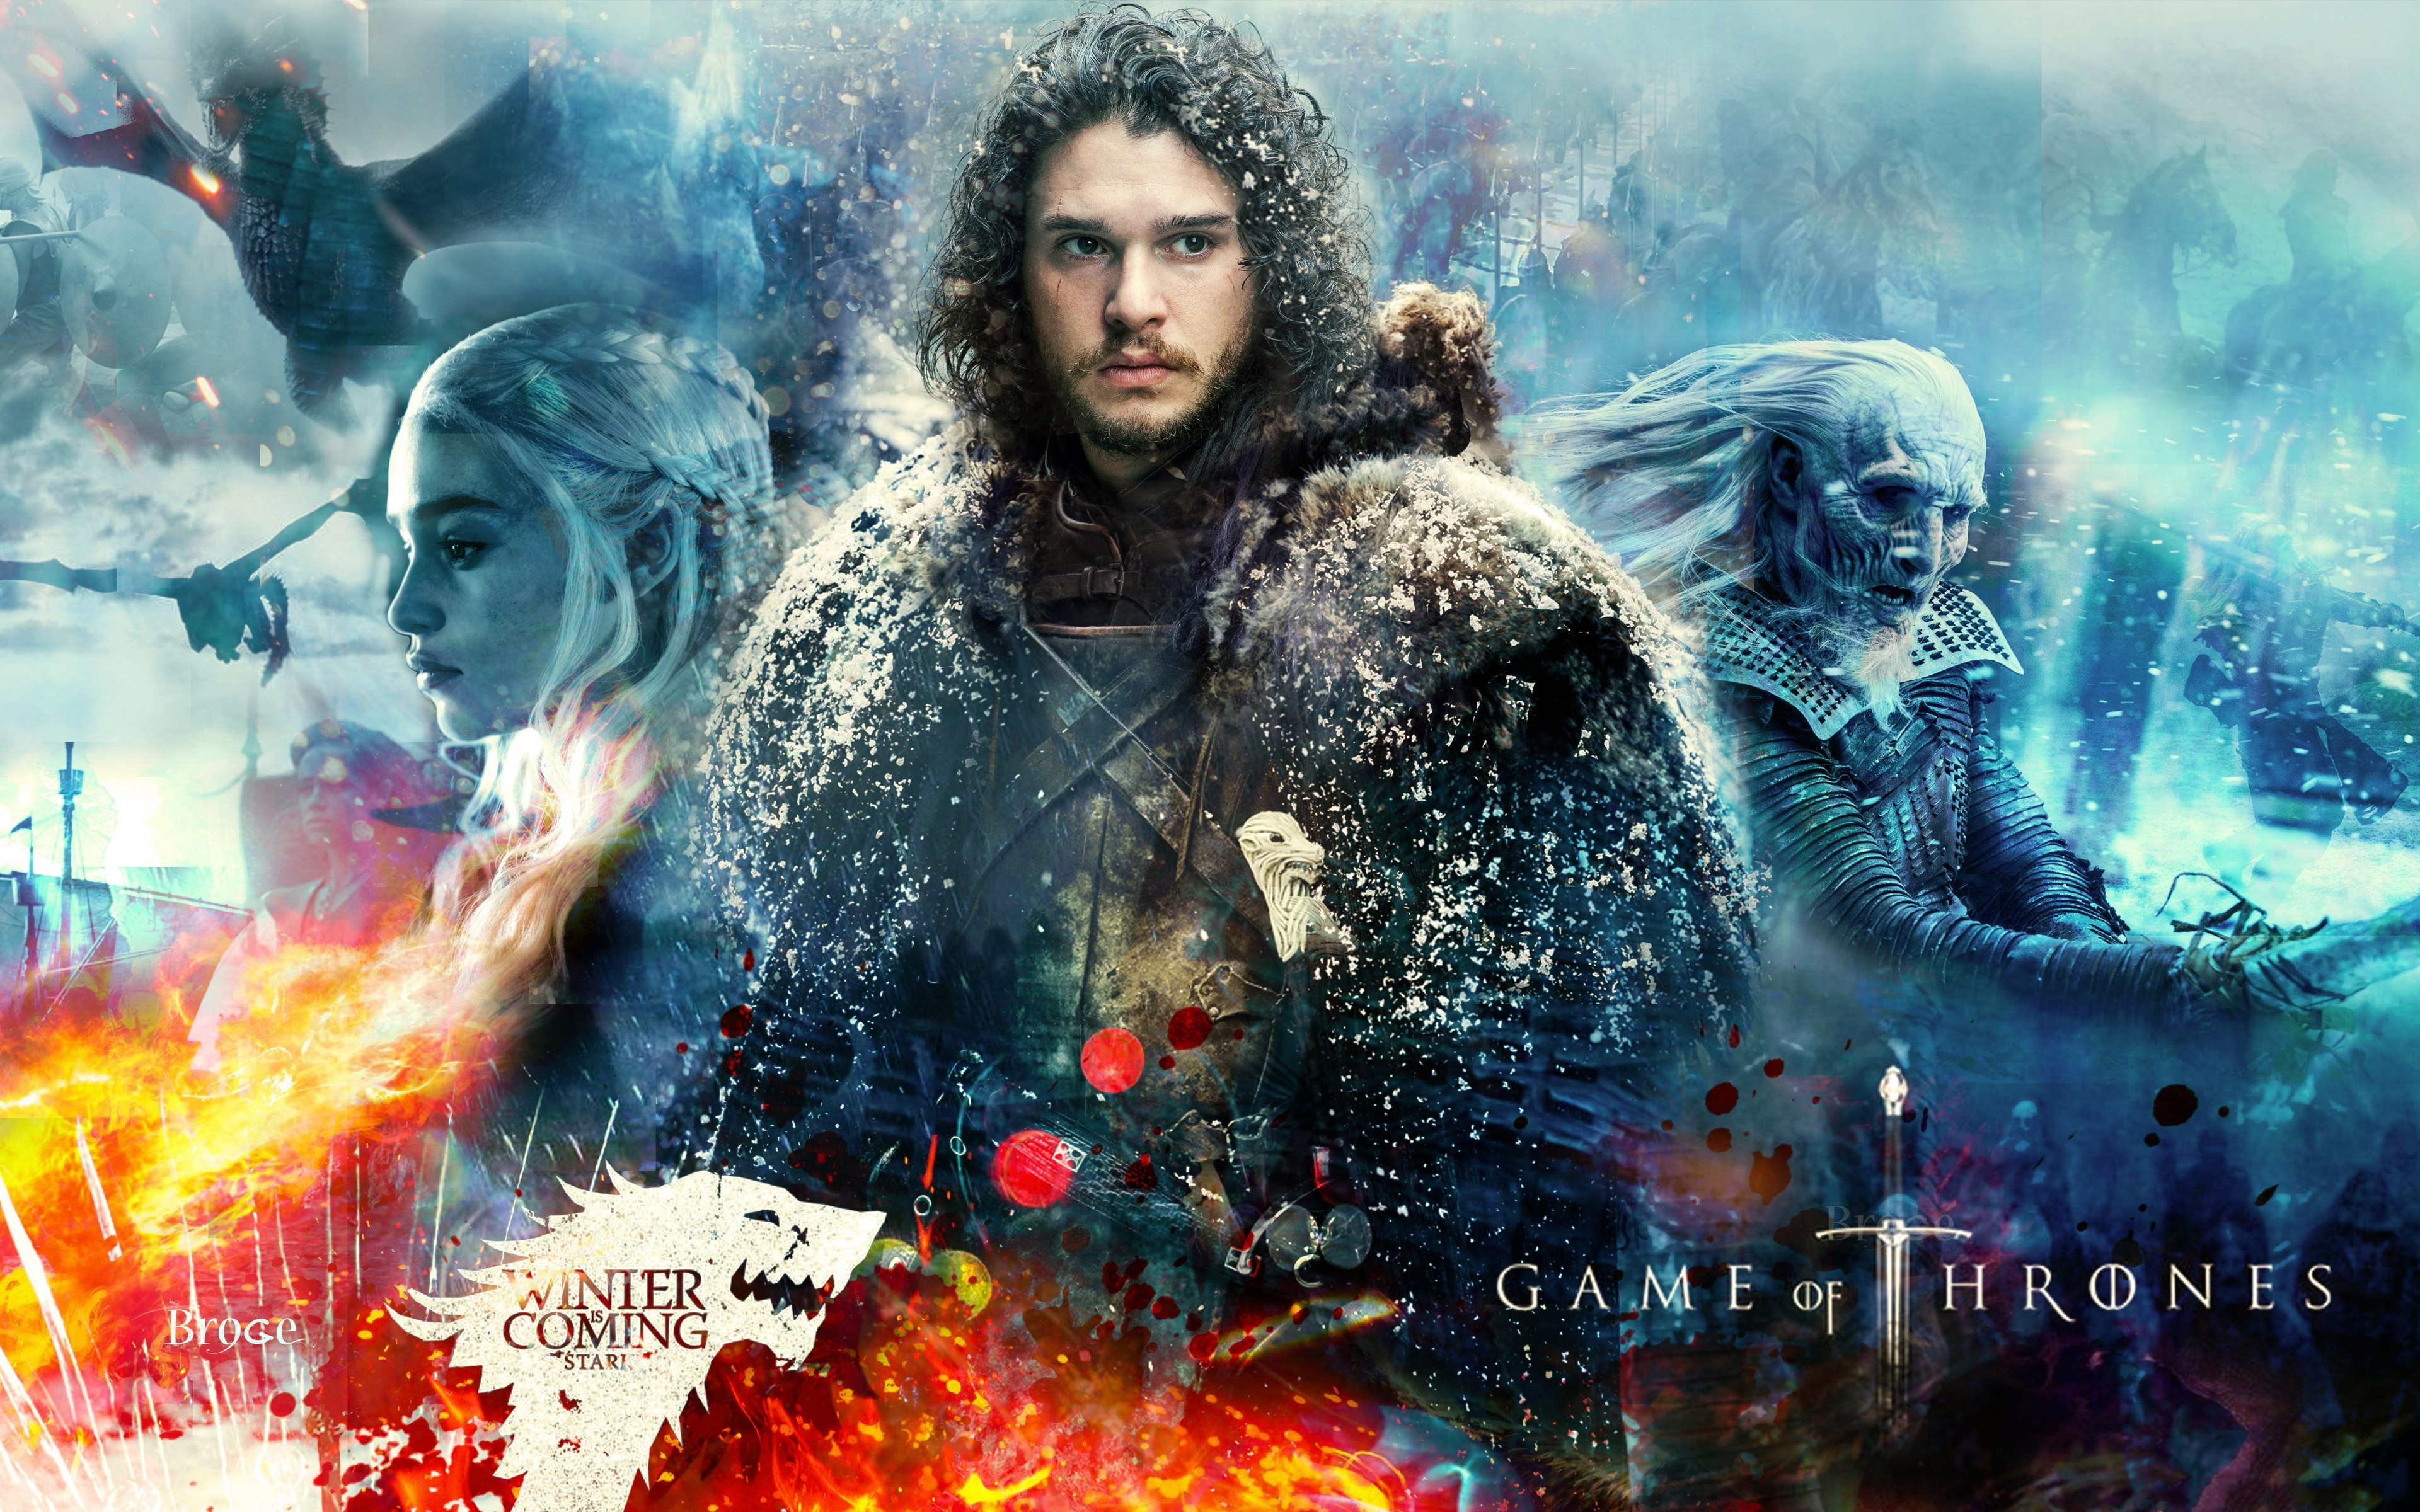 game of thrones season 7 jon snow 4k wallpapers | hd wallpapers | id